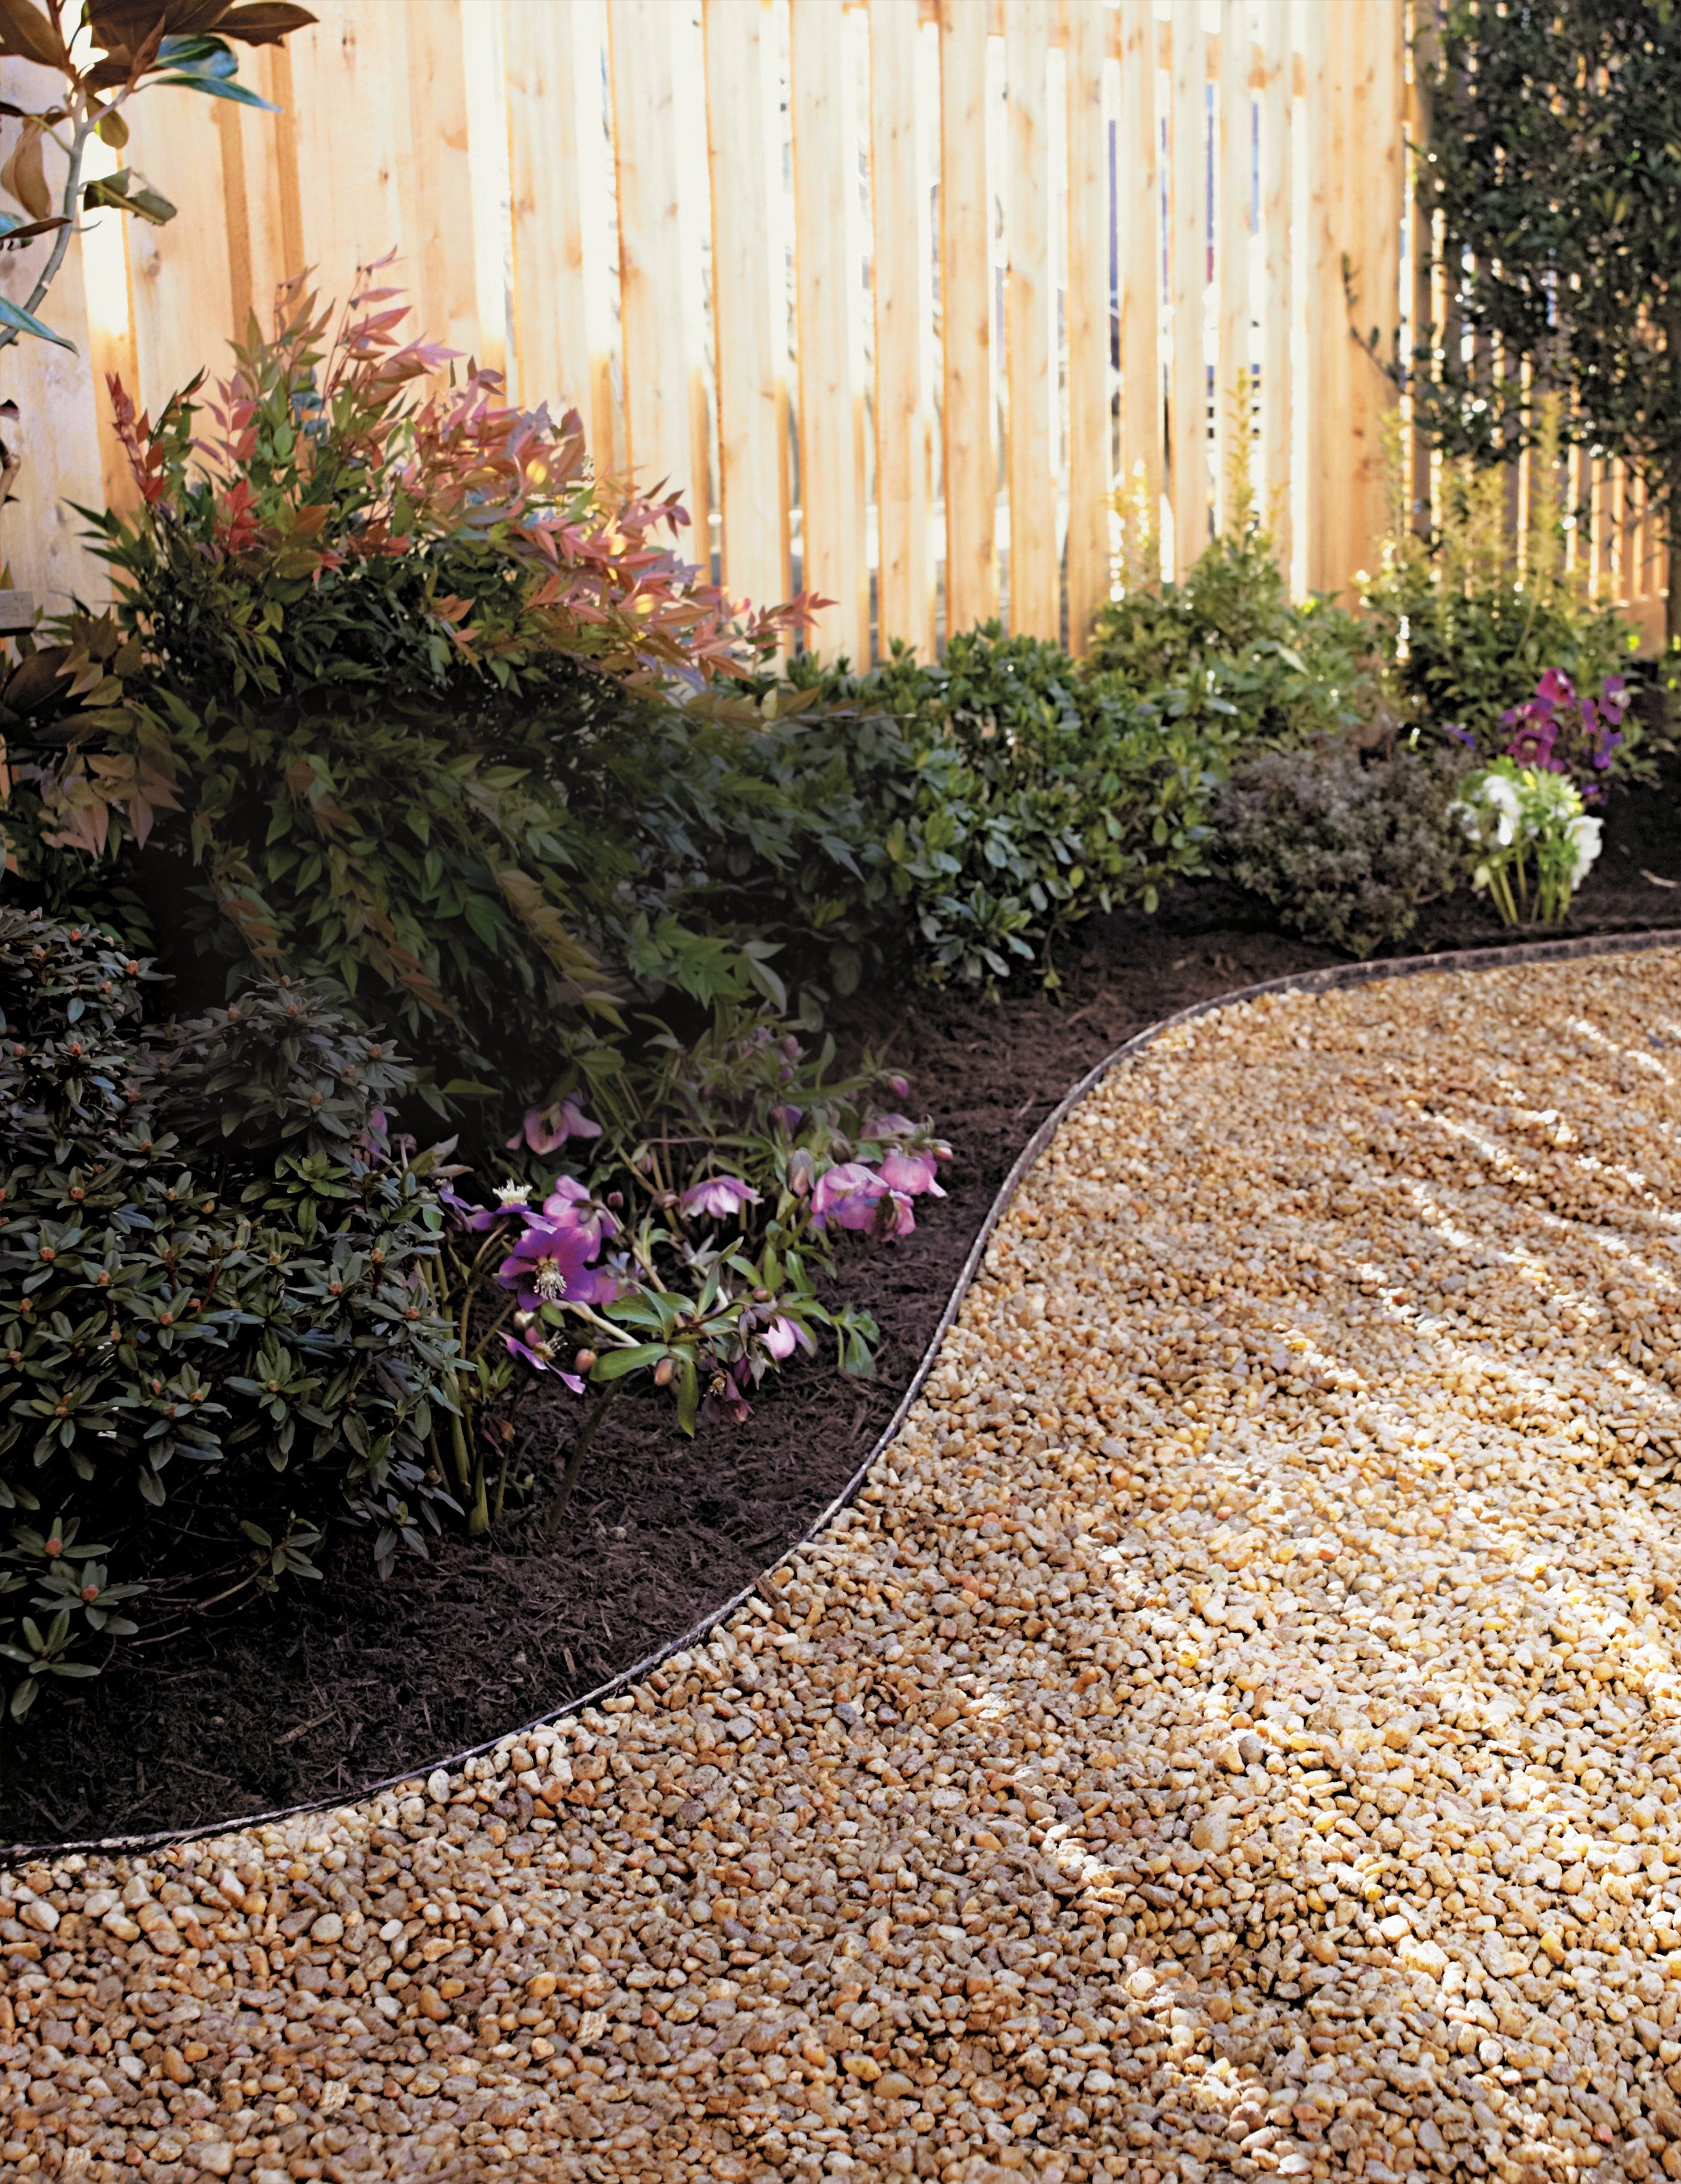 Backyard Gravel Ideas How To Lay A Budgetfriendly Gravel Path  Walkways Yards And